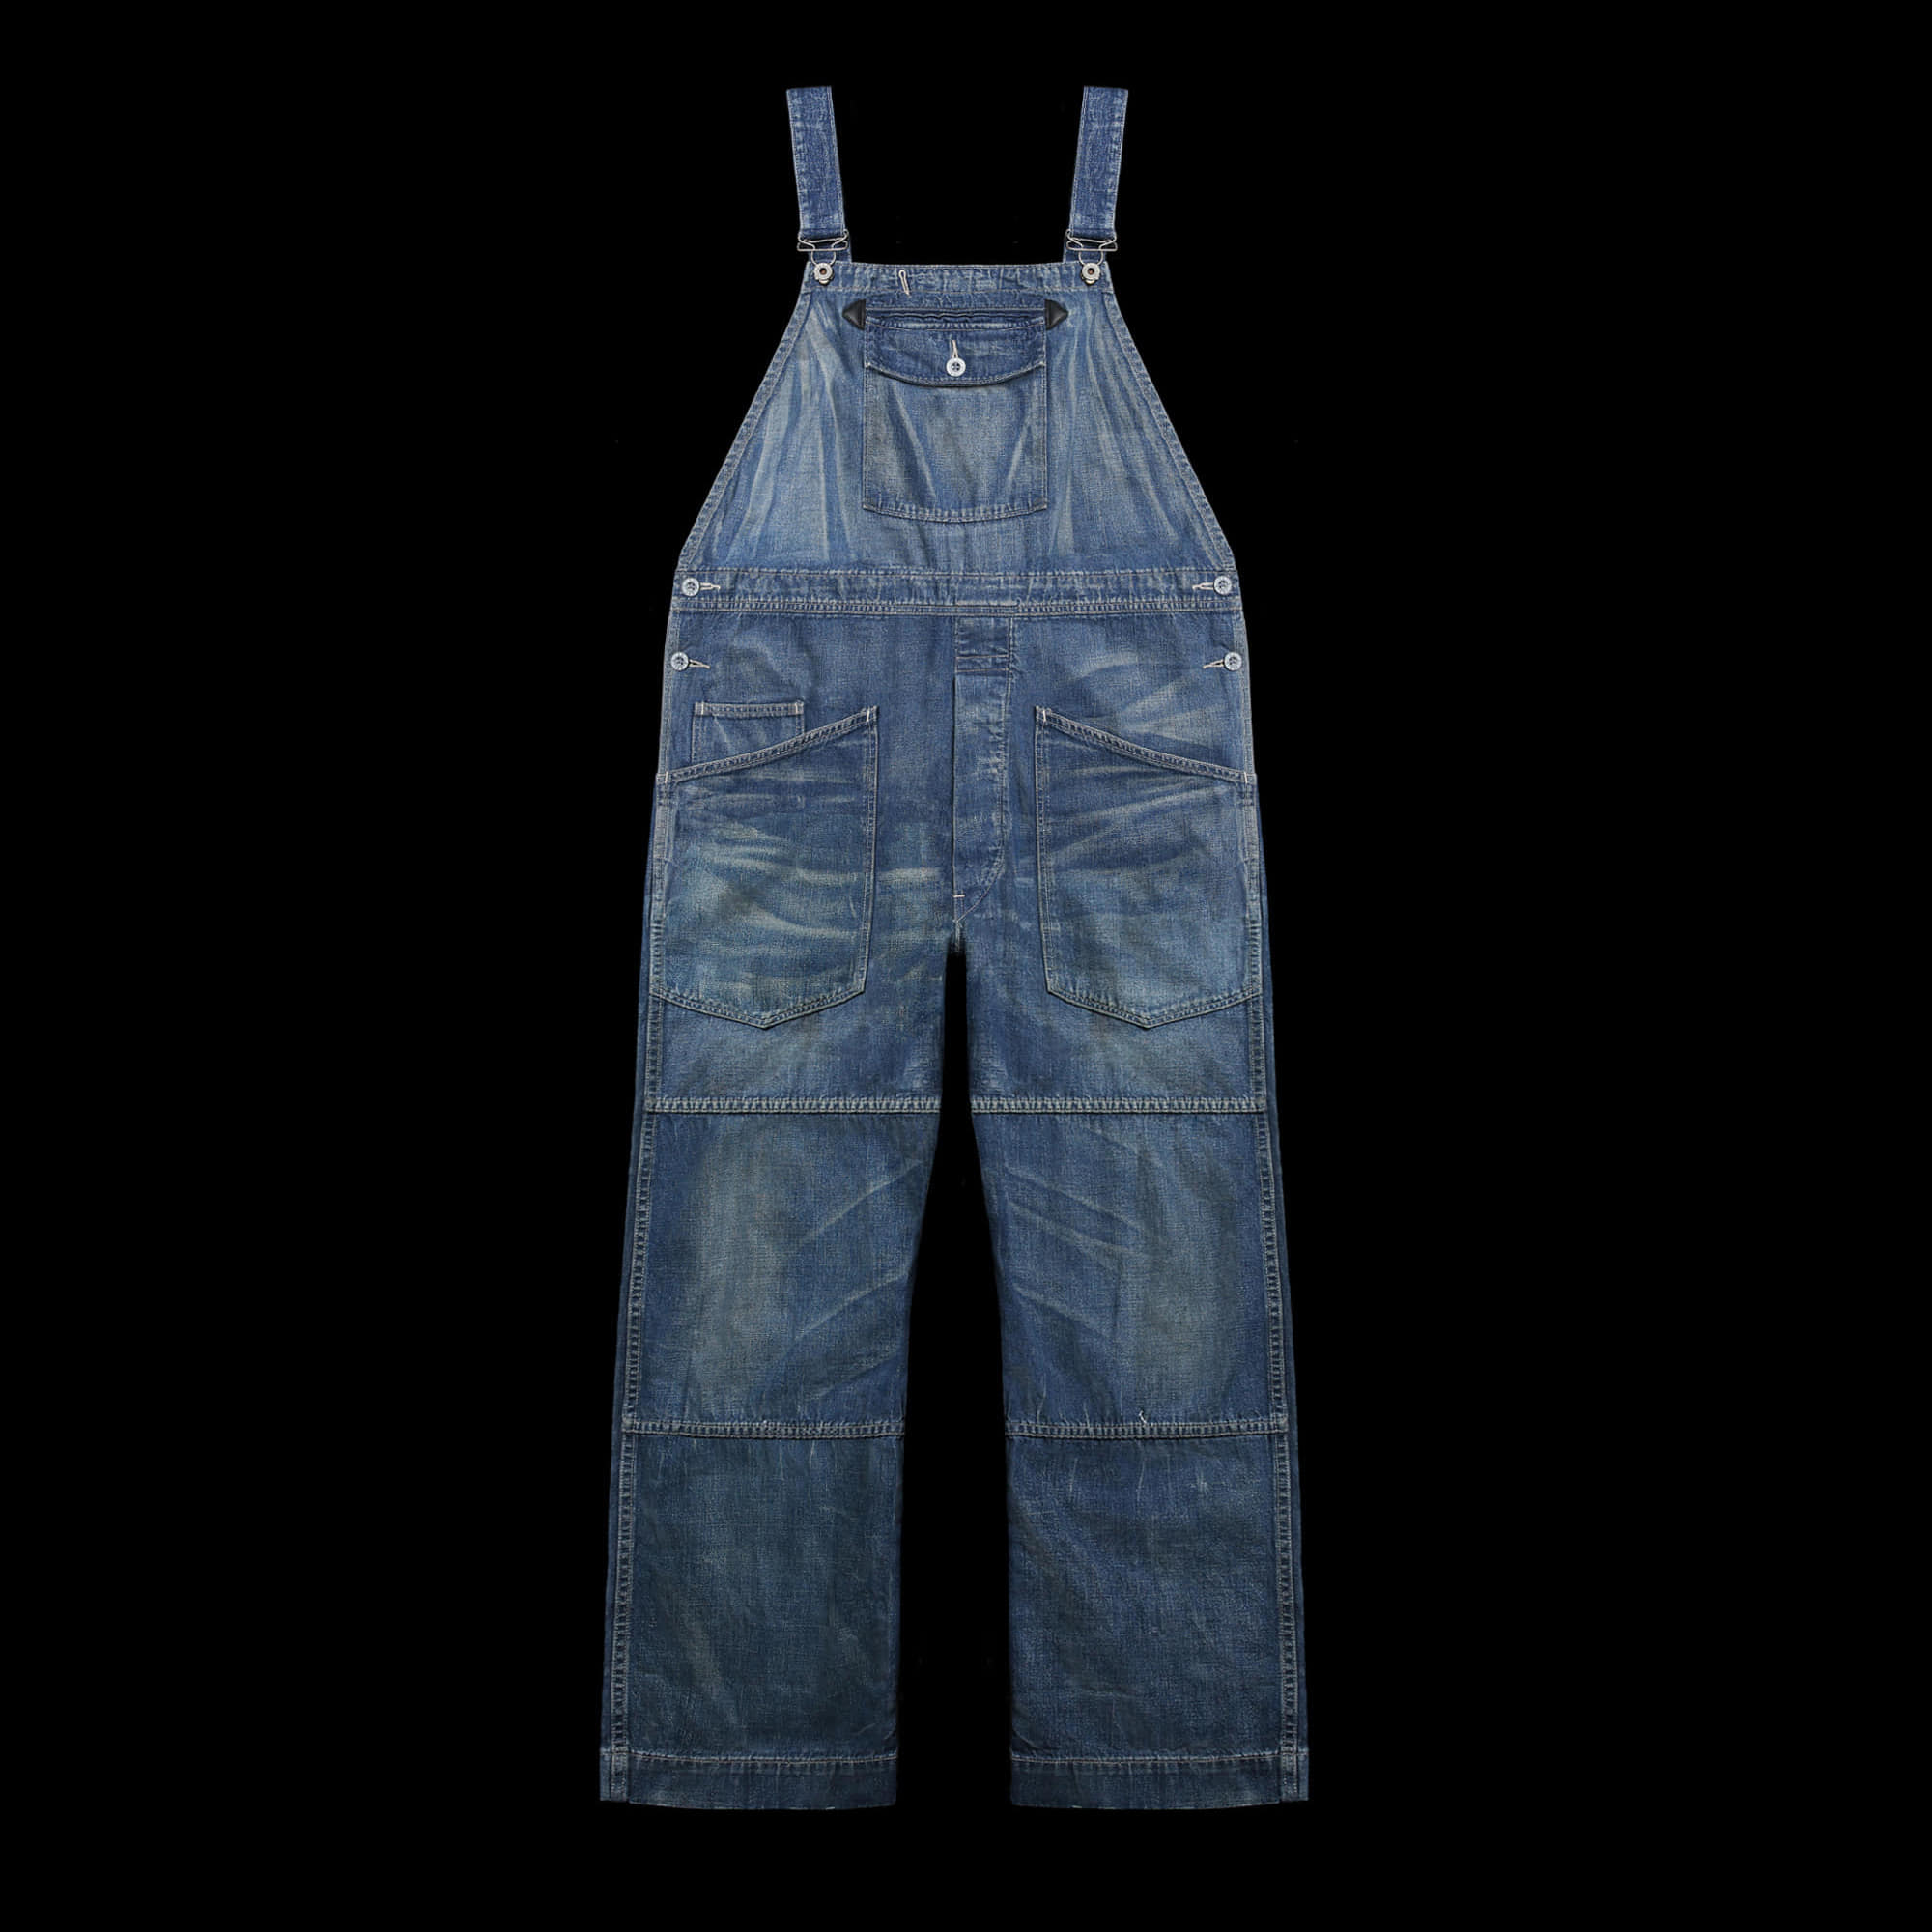 RRLLIMITED EDITIONLOWBACK OVERALL